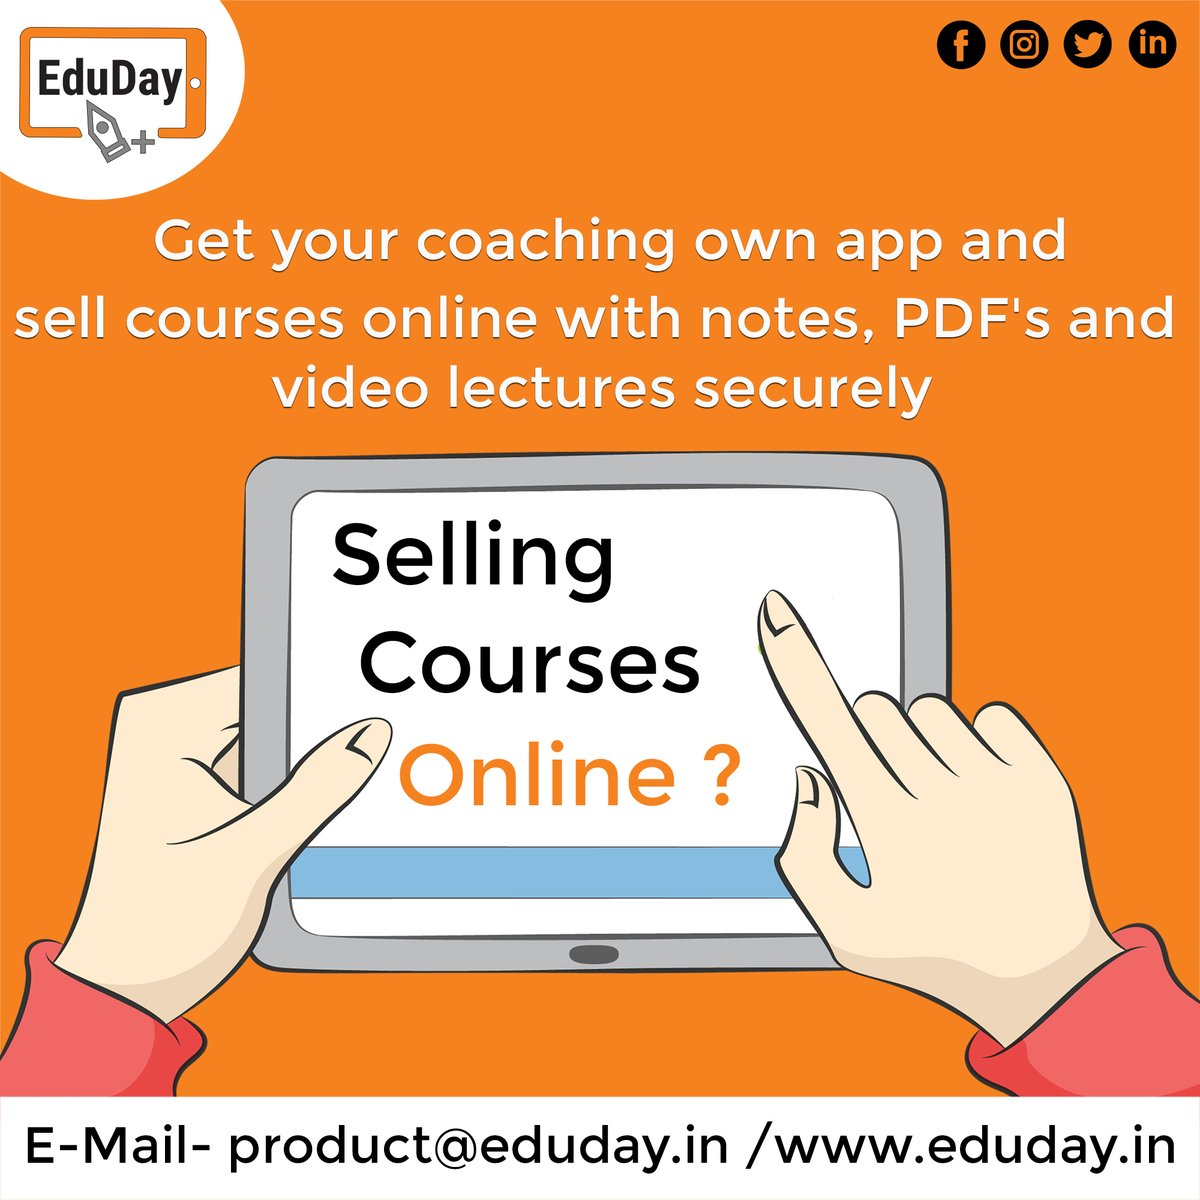 Transform Teaching, Inspire Learning and Deliver a world-class Student Experience.  Get in touch to know more:- Phone : +91 7447712085 E-Mail: product@eduday.in visit:- http://www.eduday.in  #eduday #edudayindia #pune #india #tab #tablets #CoachingInstitute #Coachingclassesspic.twitter.com/XBXW8cDtJQ